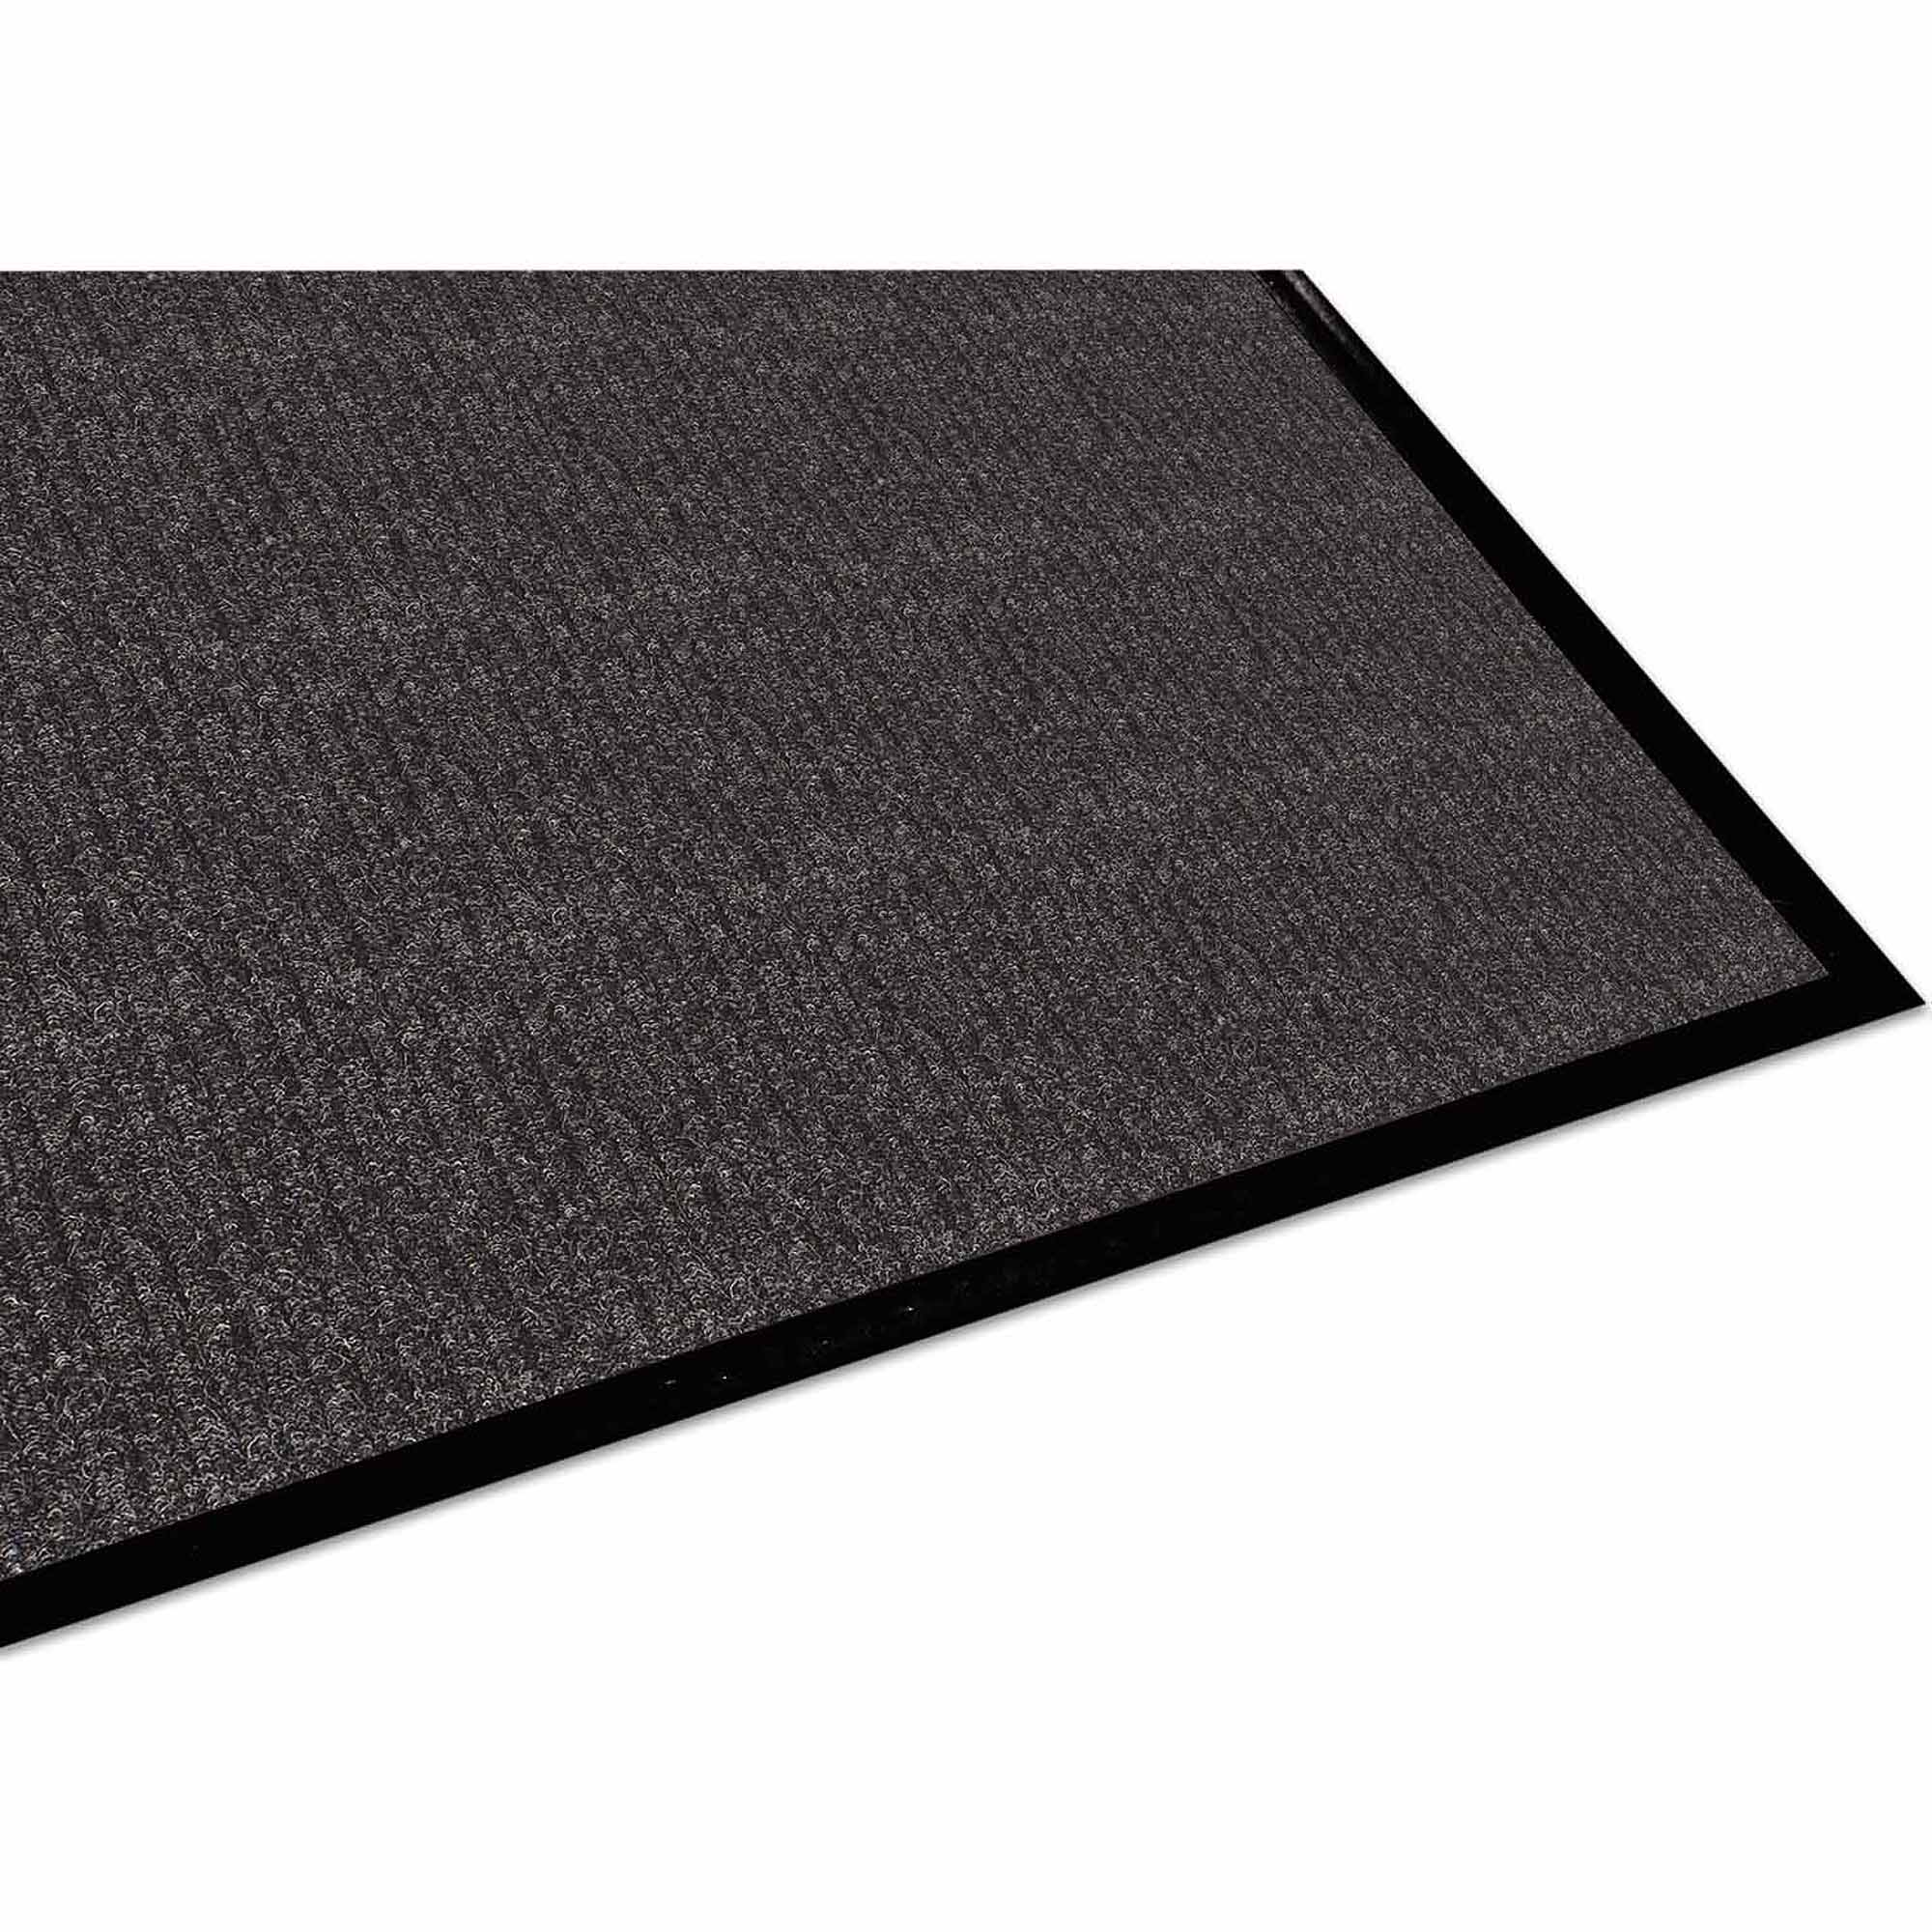 "Guardian Golden Series Indoor Wiper Mat, Polypropylene, 36"" x 60"", Charcoal"